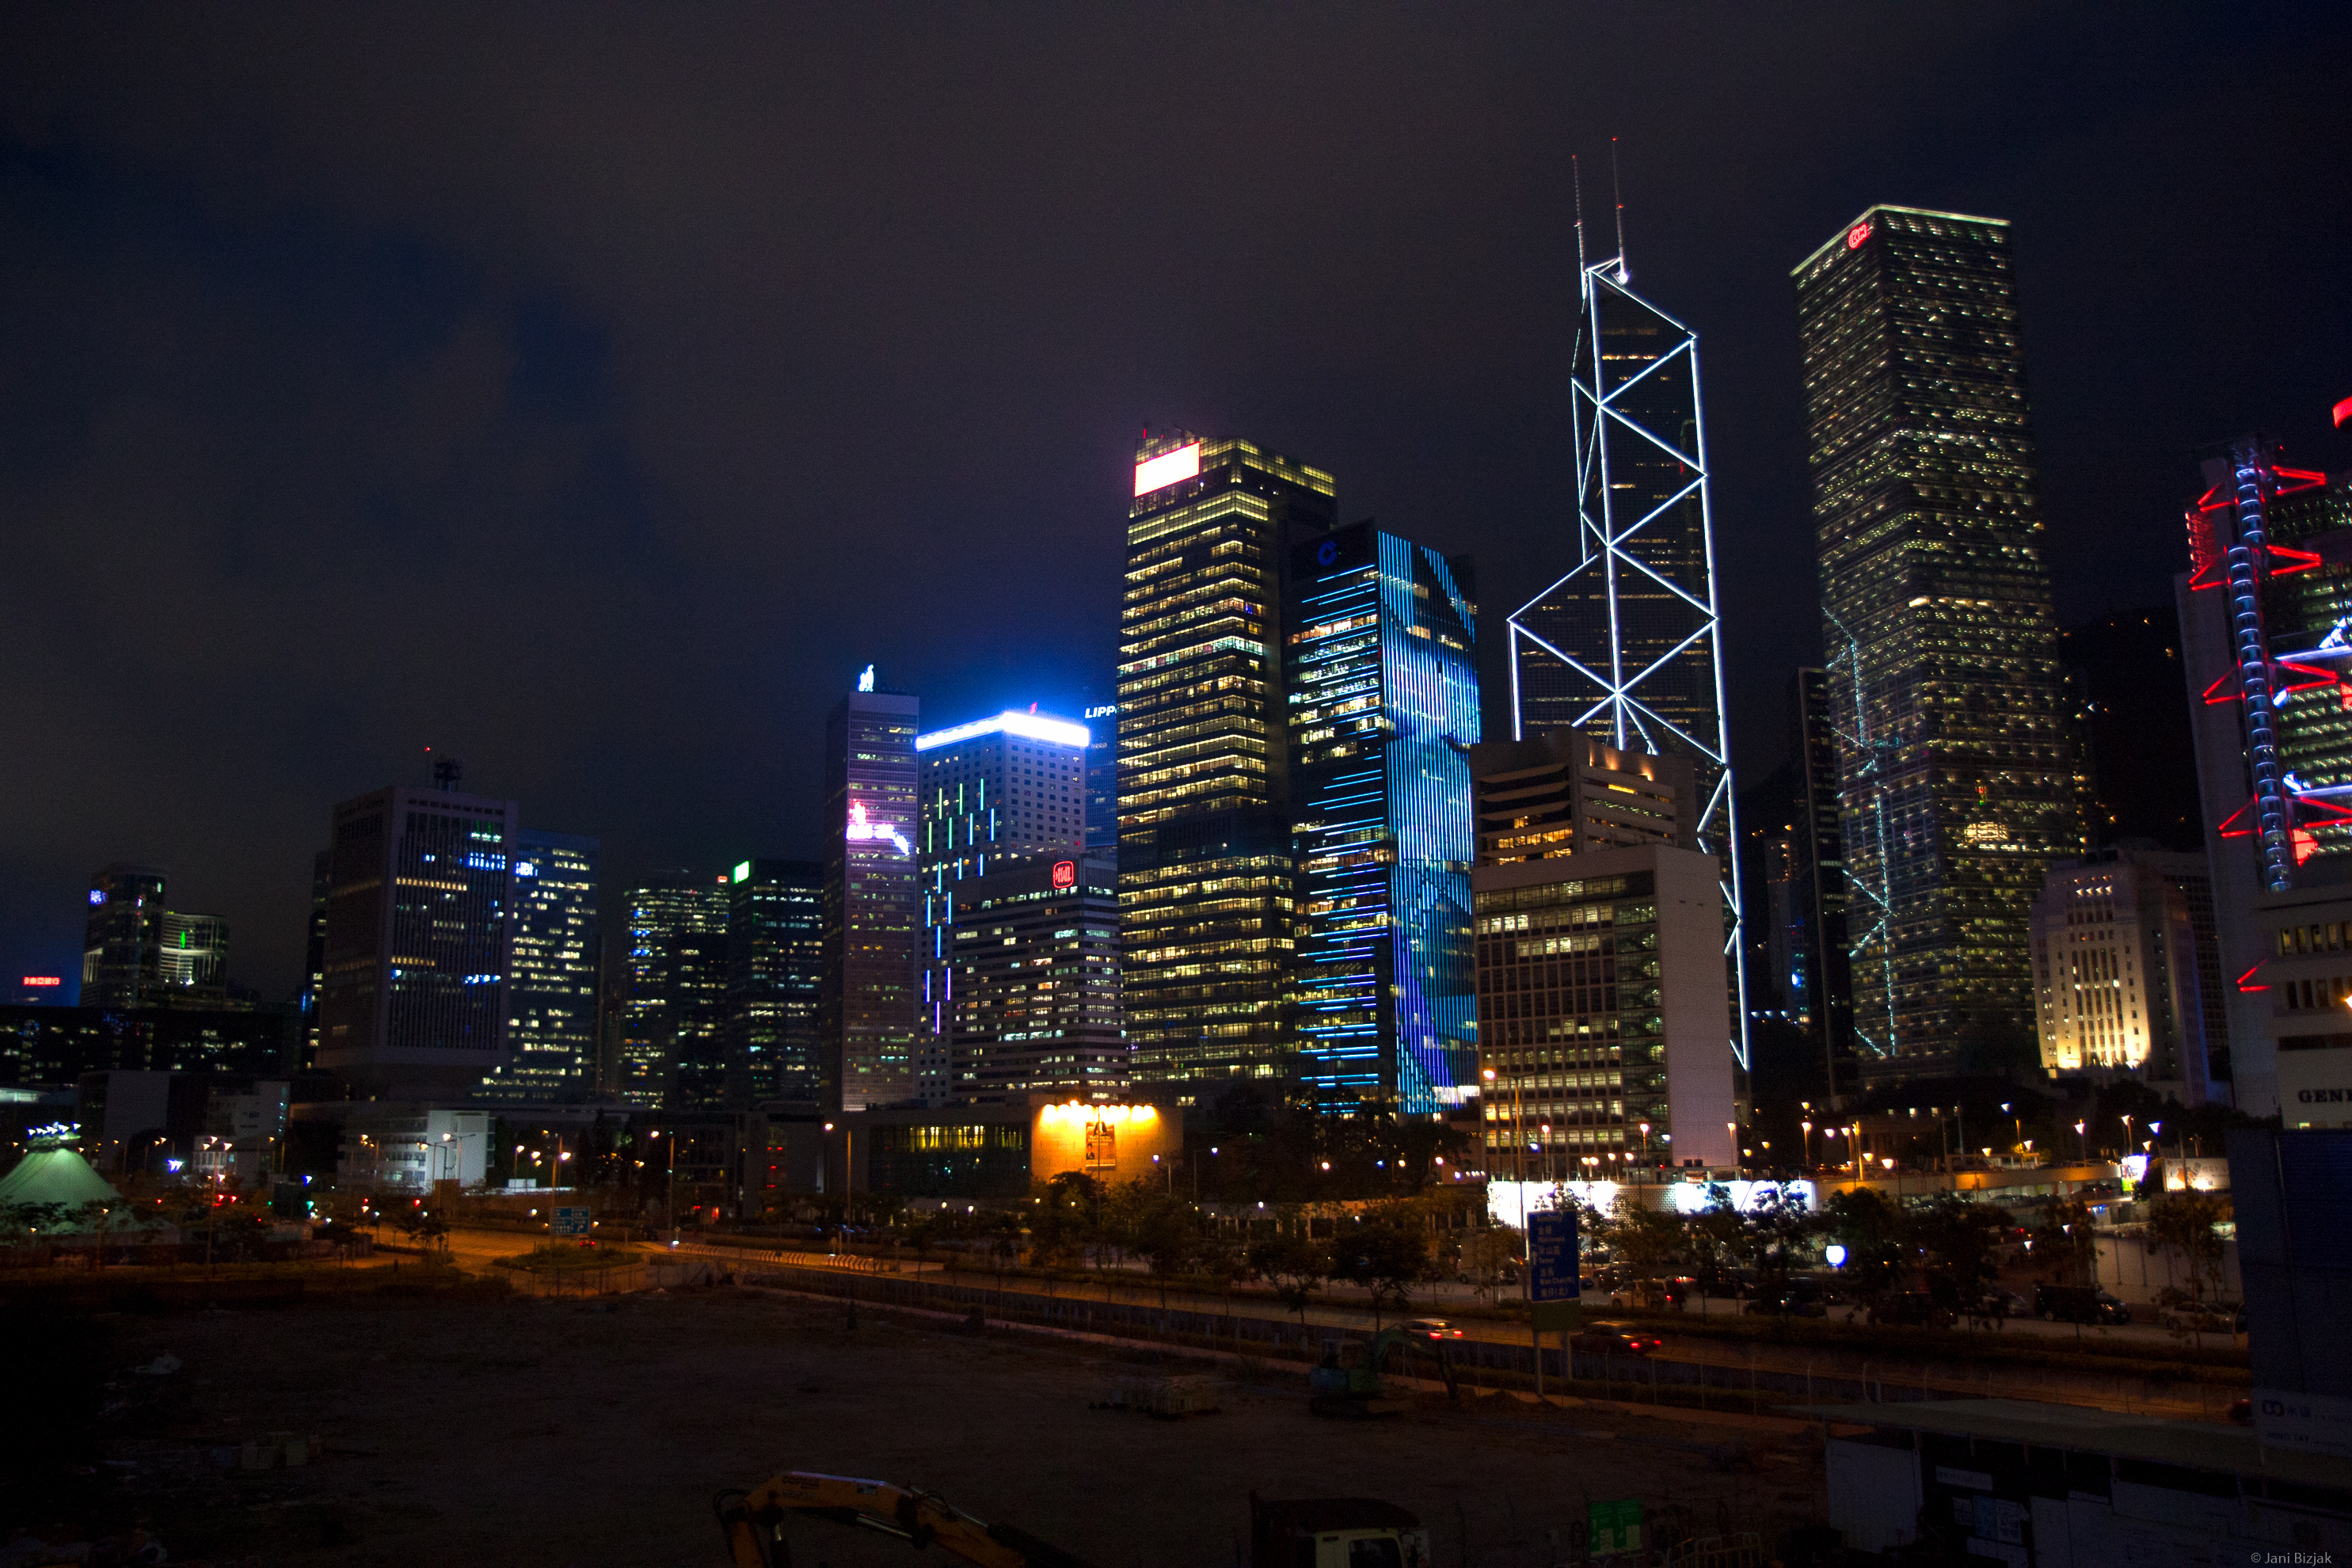 The most famous night skyline